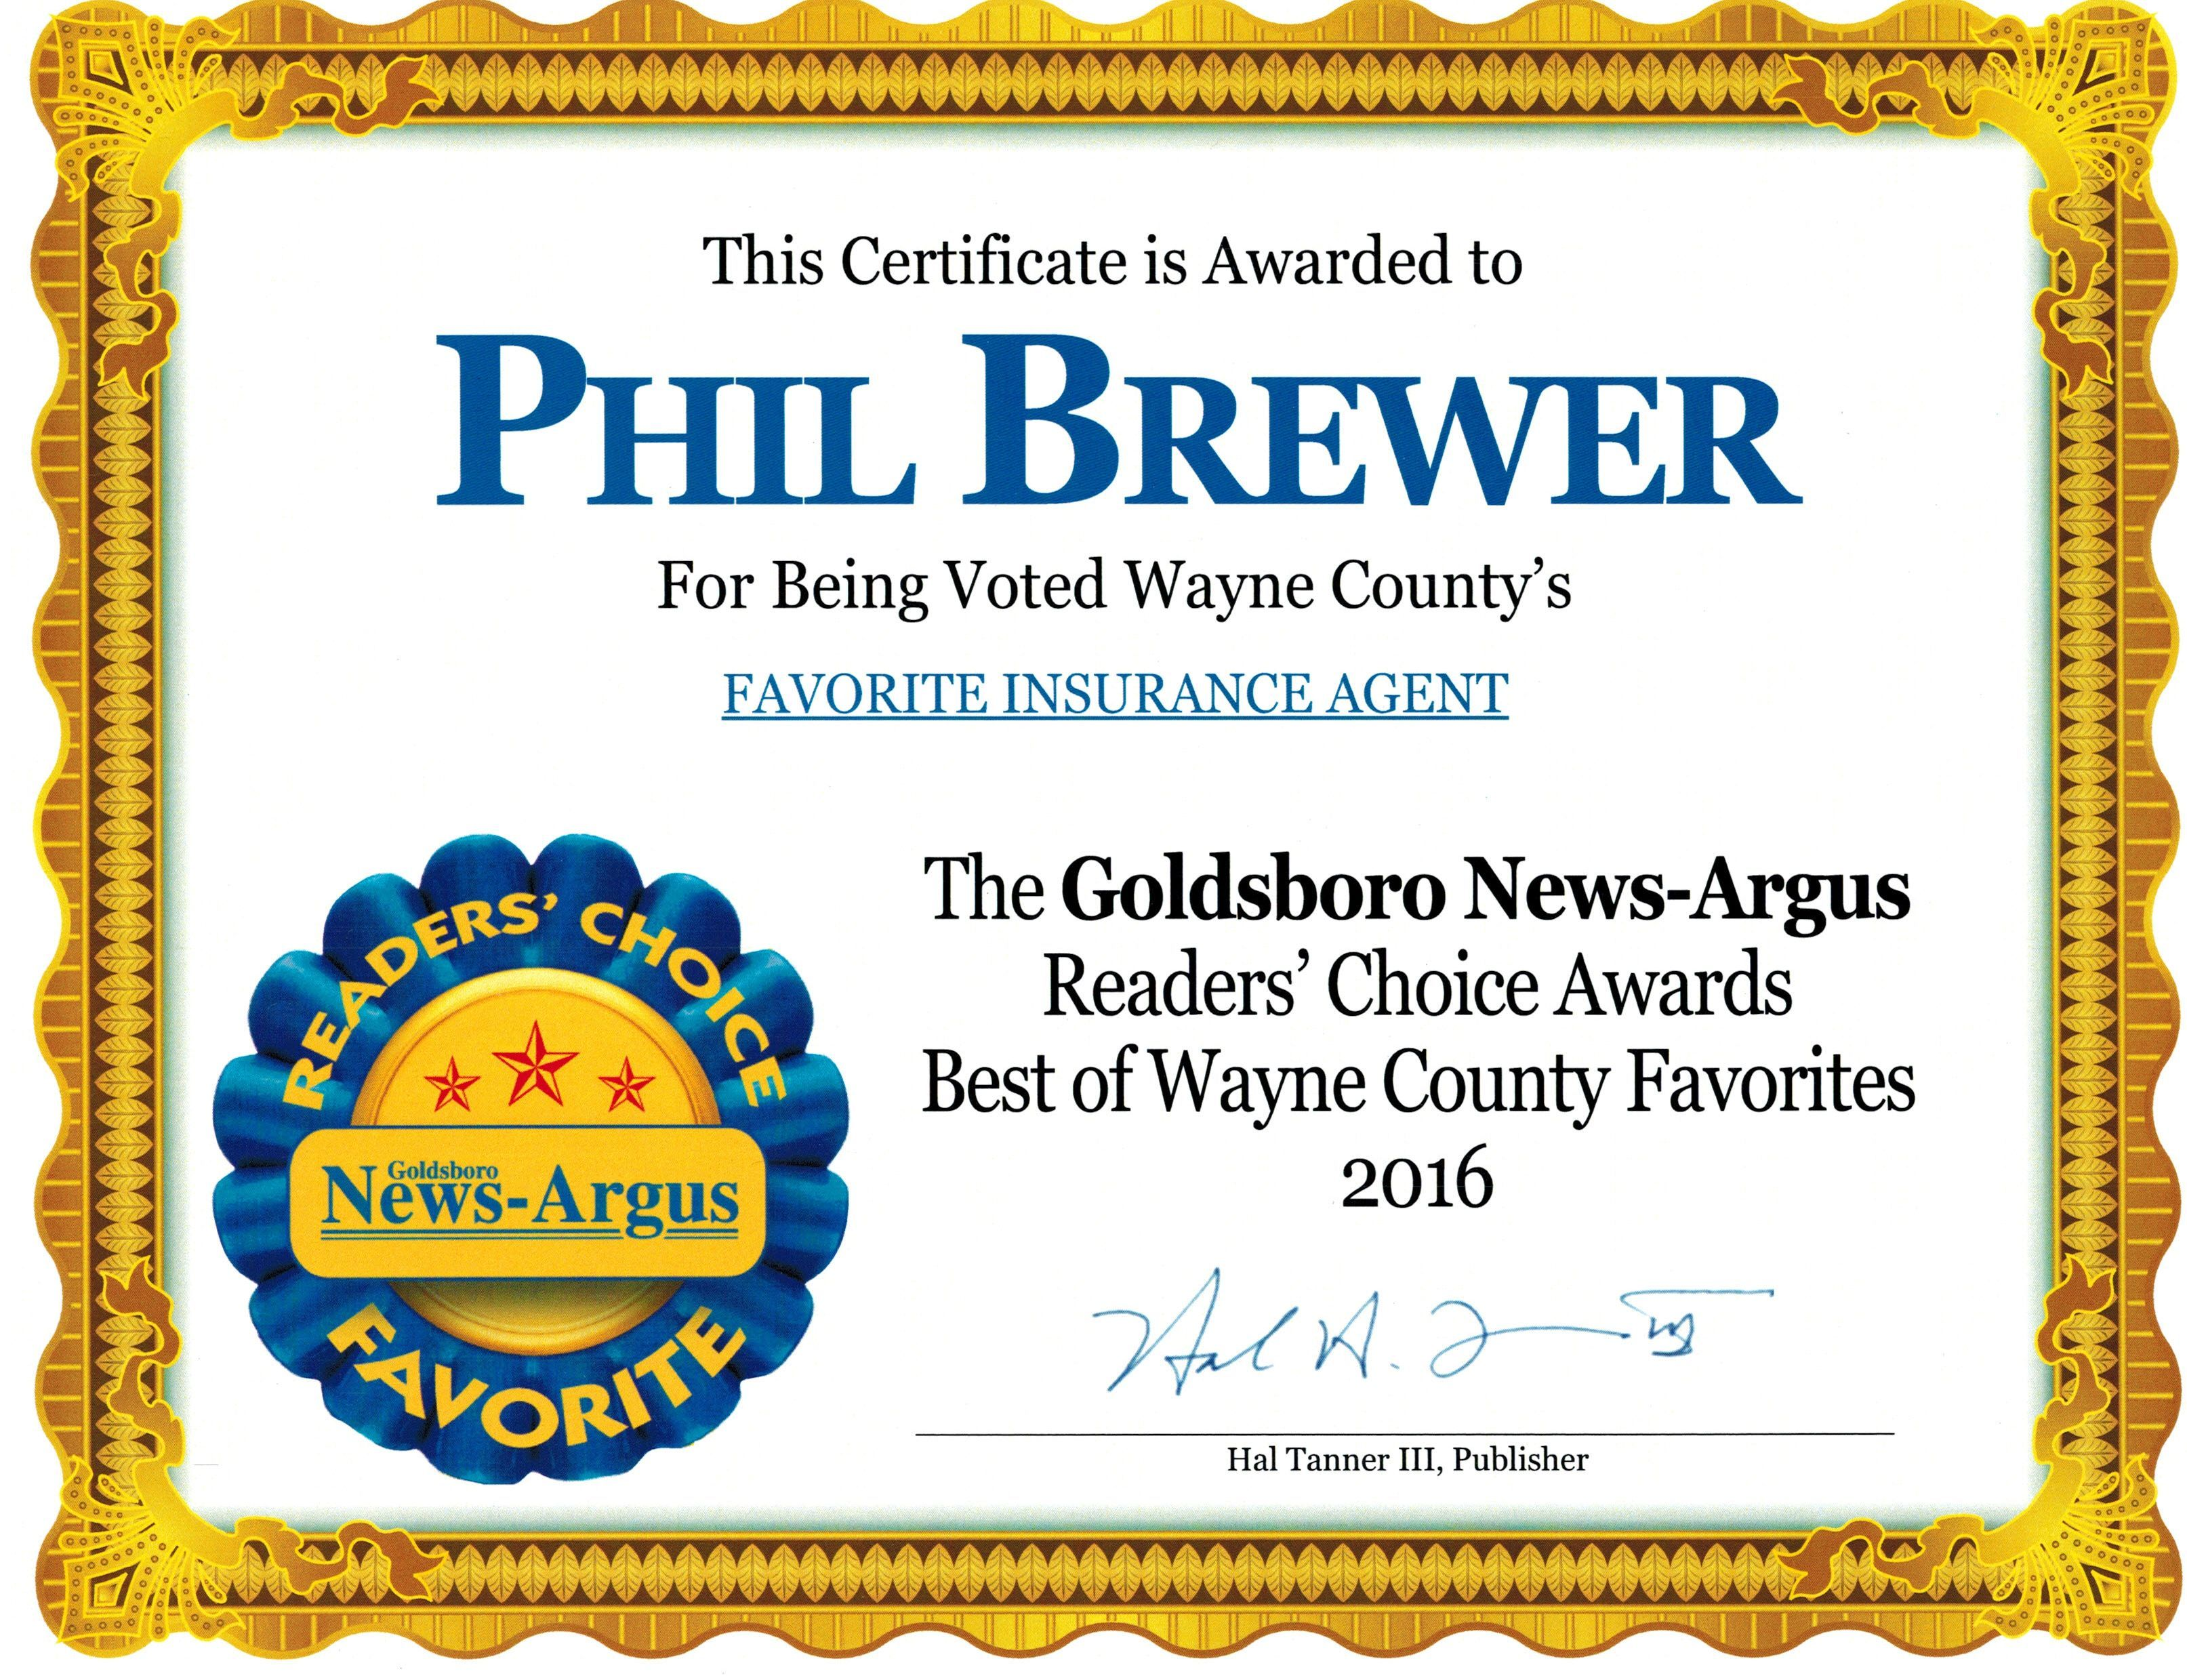 The results are in for the 5th Annual Goldsboro News-Argus